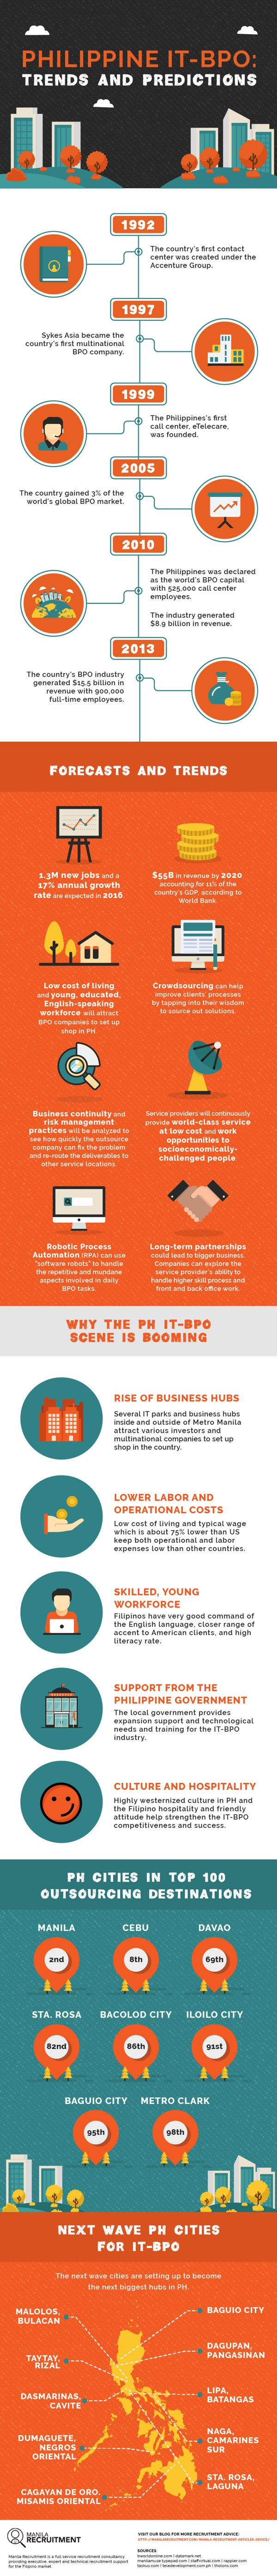 the-philippine-it-bpo-trends-and-forecasts